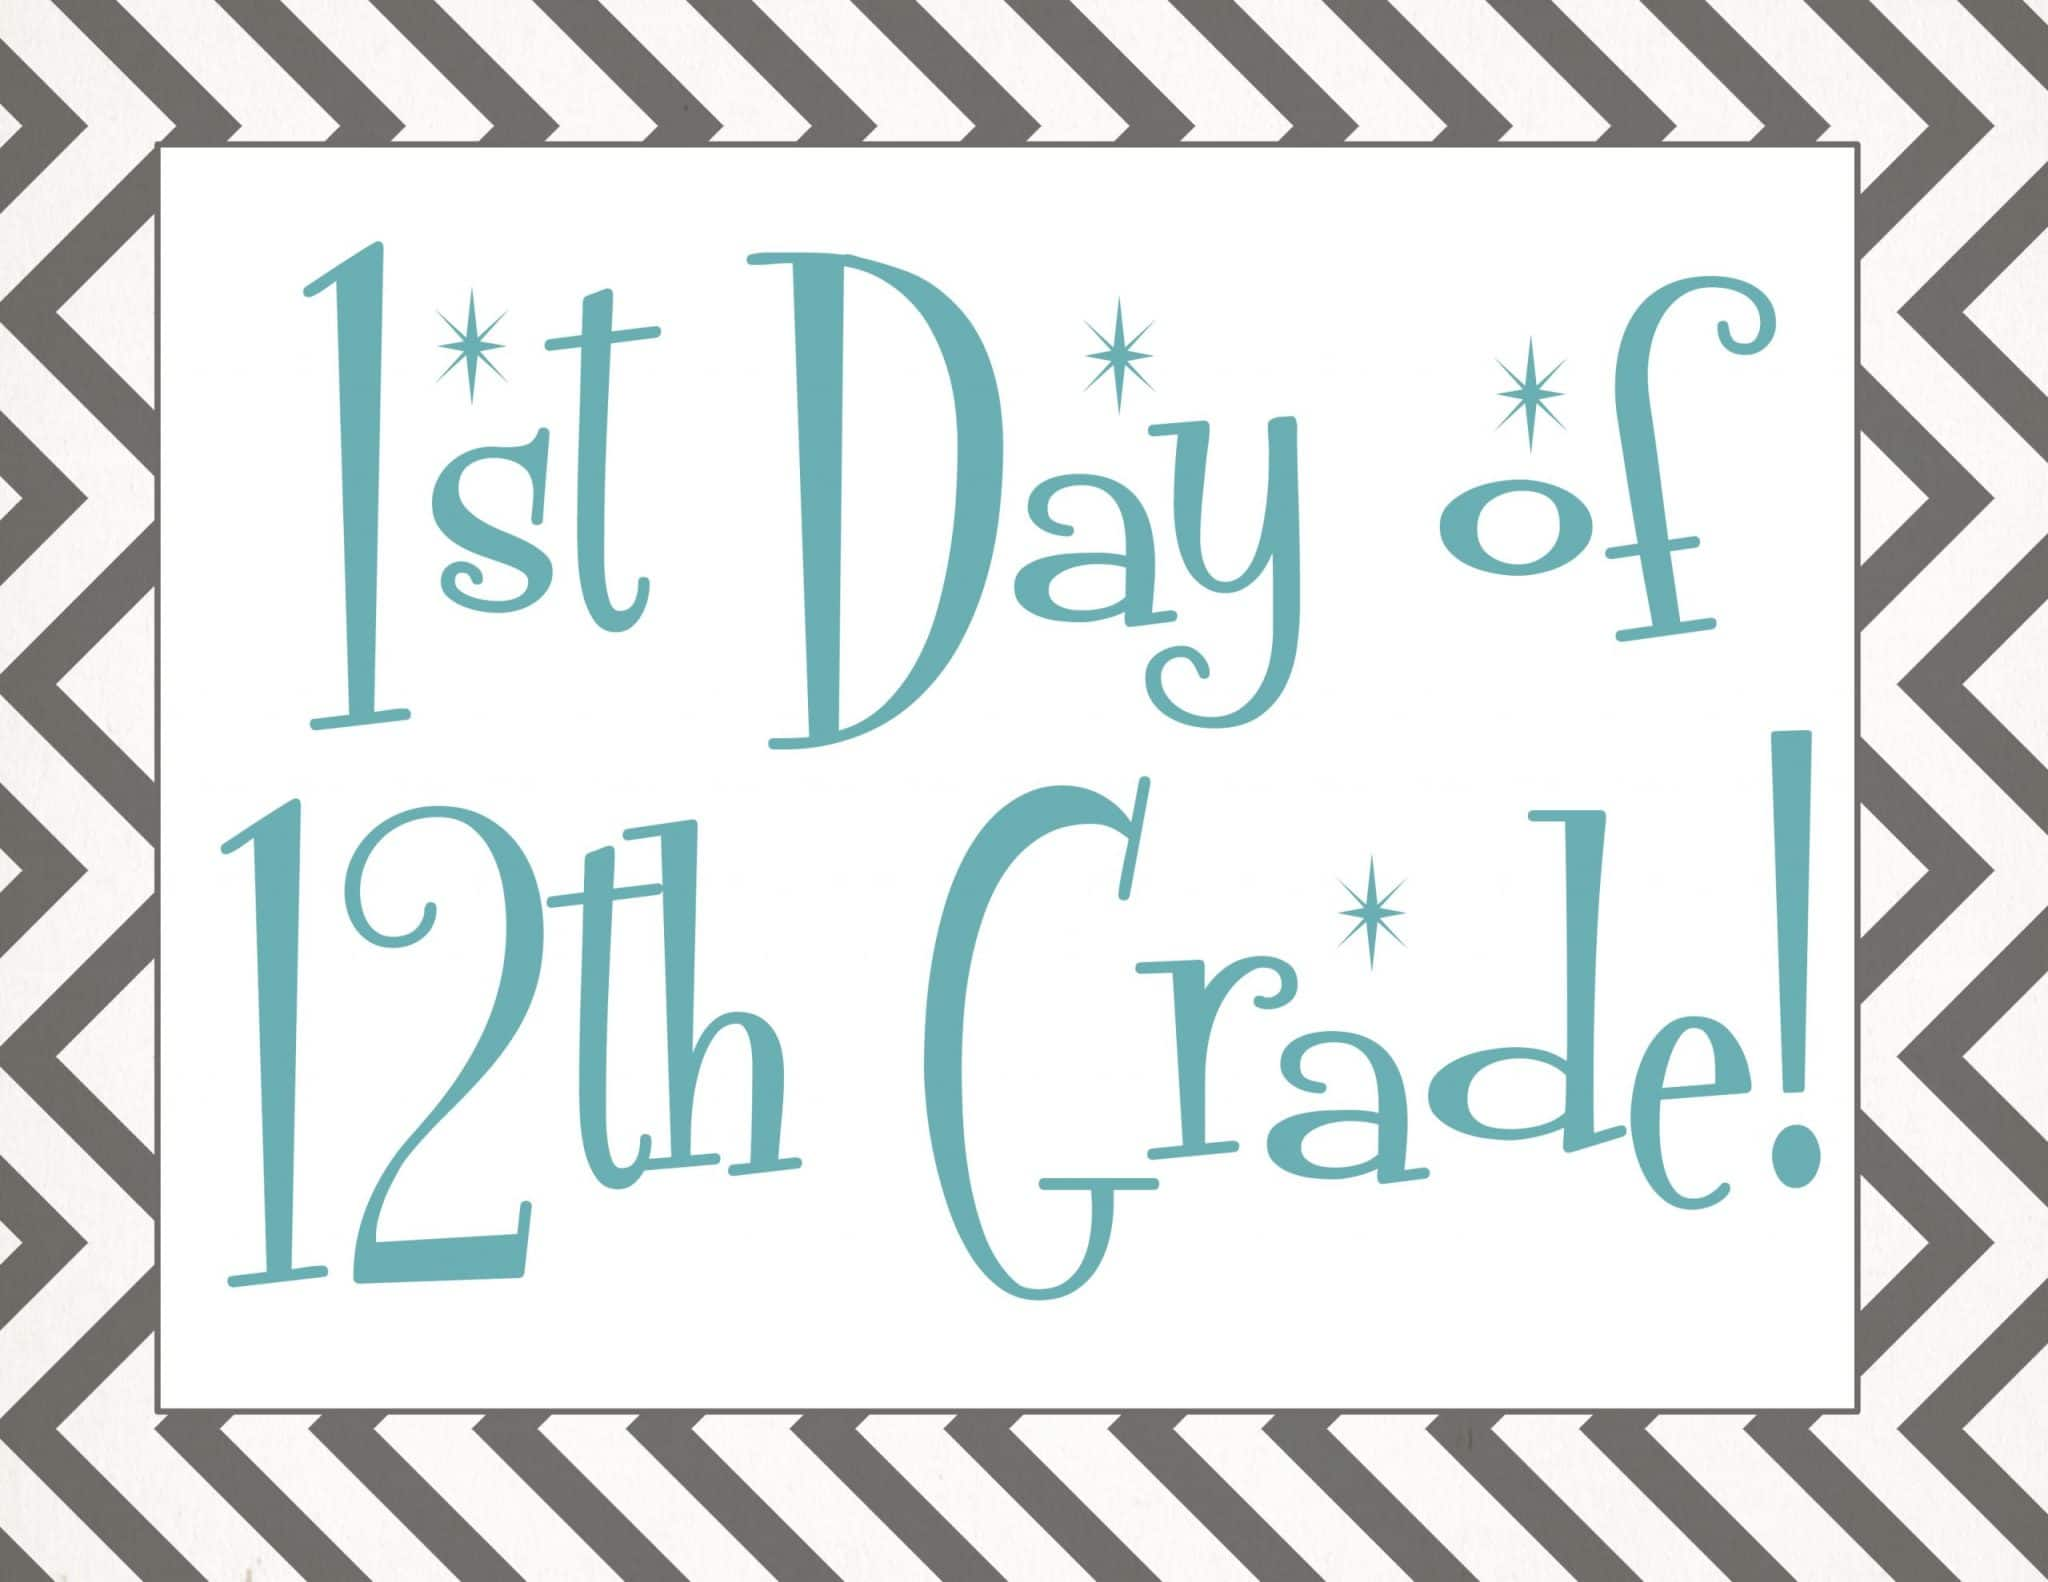 free Back to school printable | first day of 12th grade